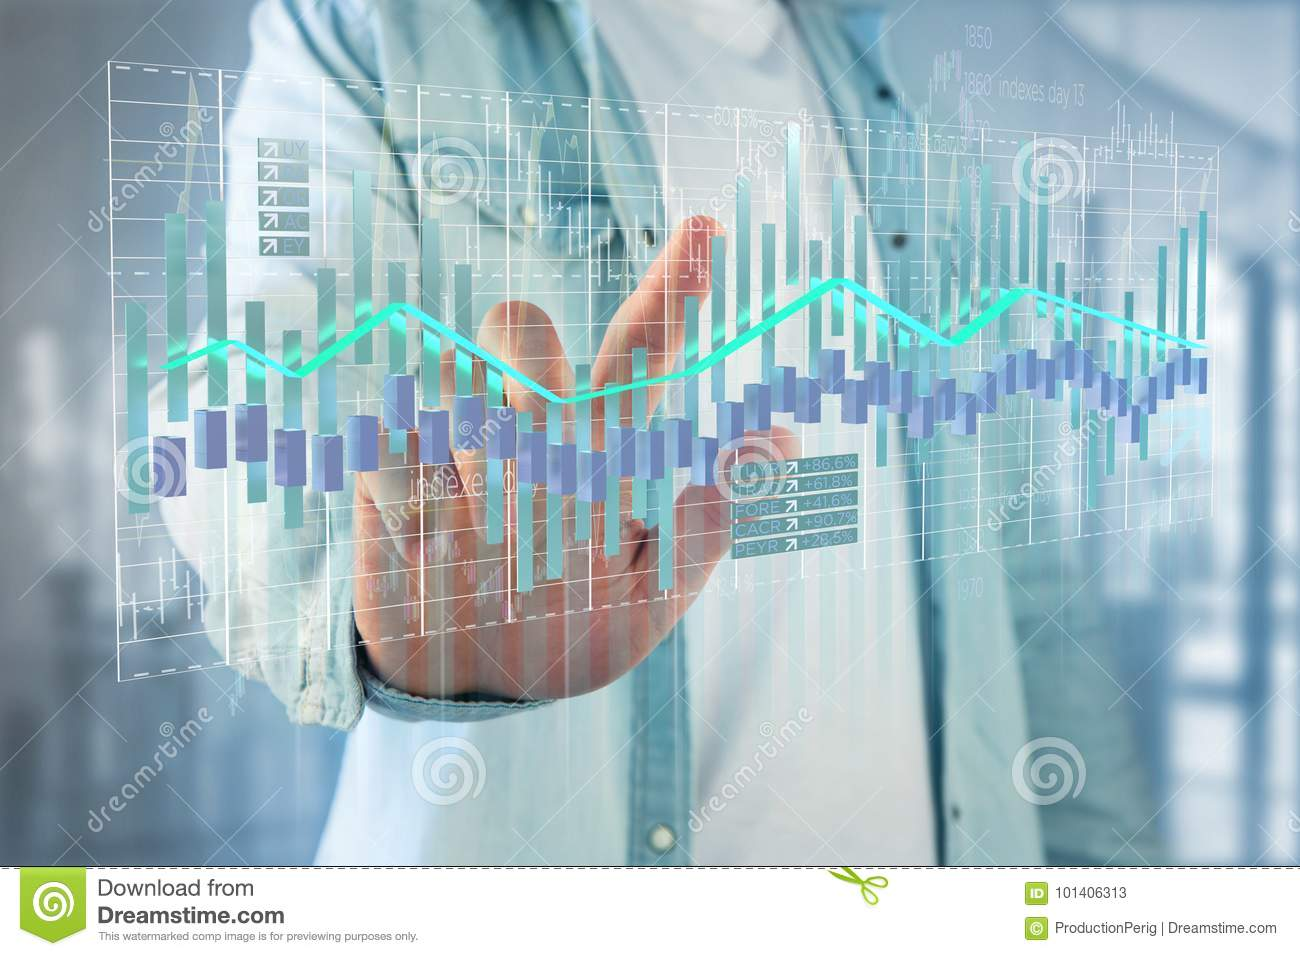 3d render Stock exchange trading data information display on a